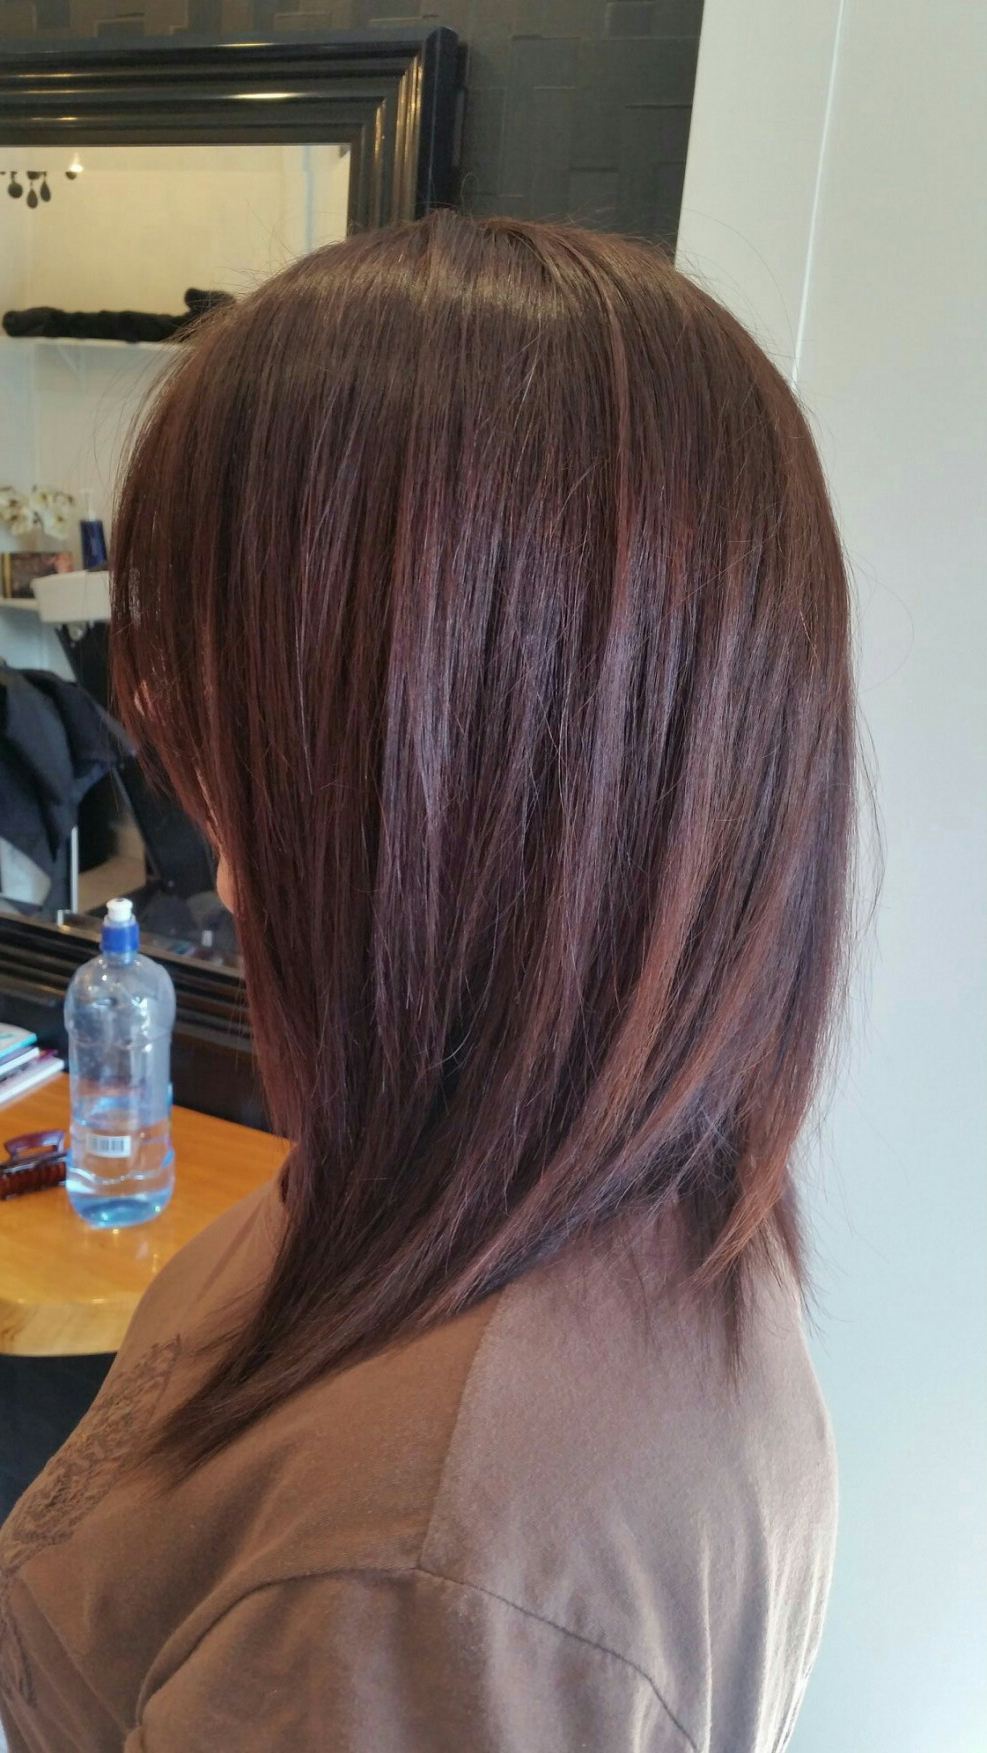 Short V Layered Haircut | Latest Hairstyles And Haircuts For Women Within V Shaped Layered Short Haircuts (View 5 of 25)